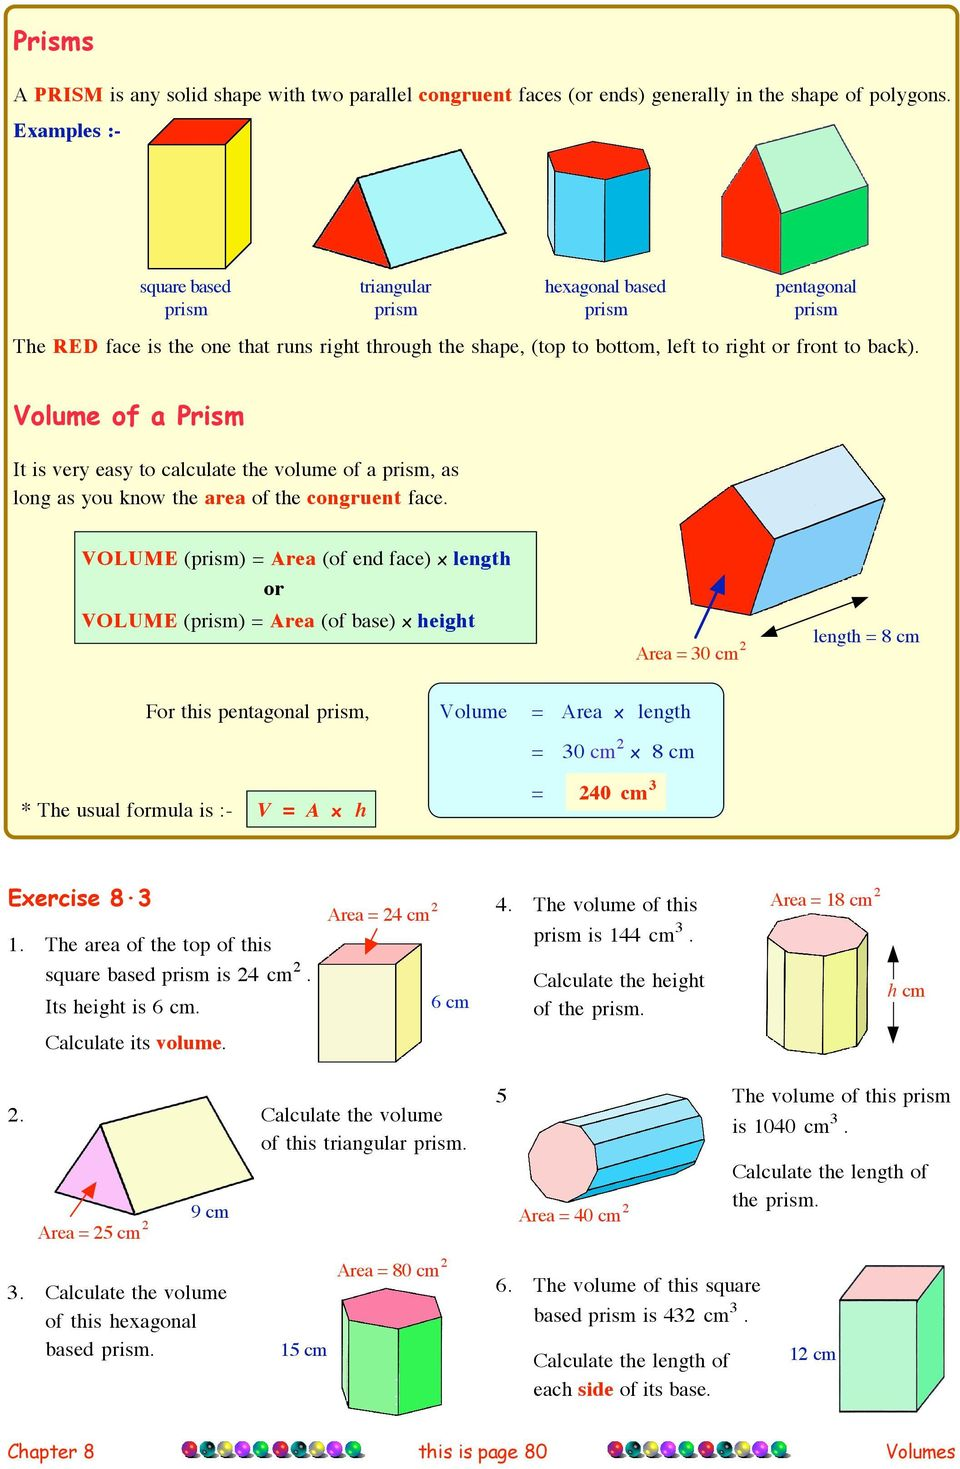 Volume of a Prism It is very easy to calculate the volume of a prism, as long as you know the area of the congruent face.